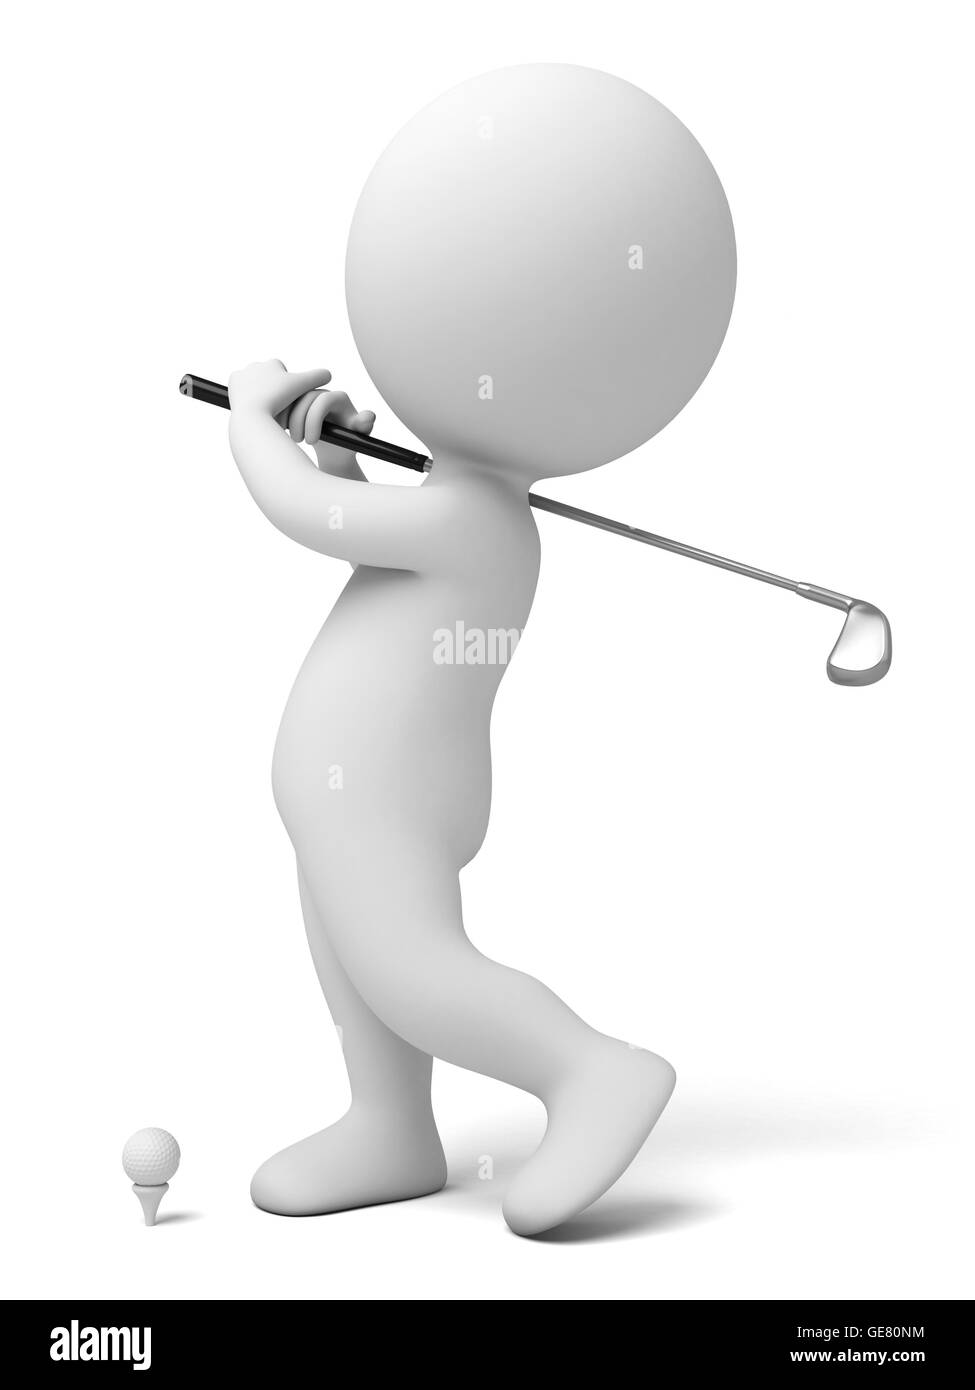 The 3d guy is playing golf - Stock Image